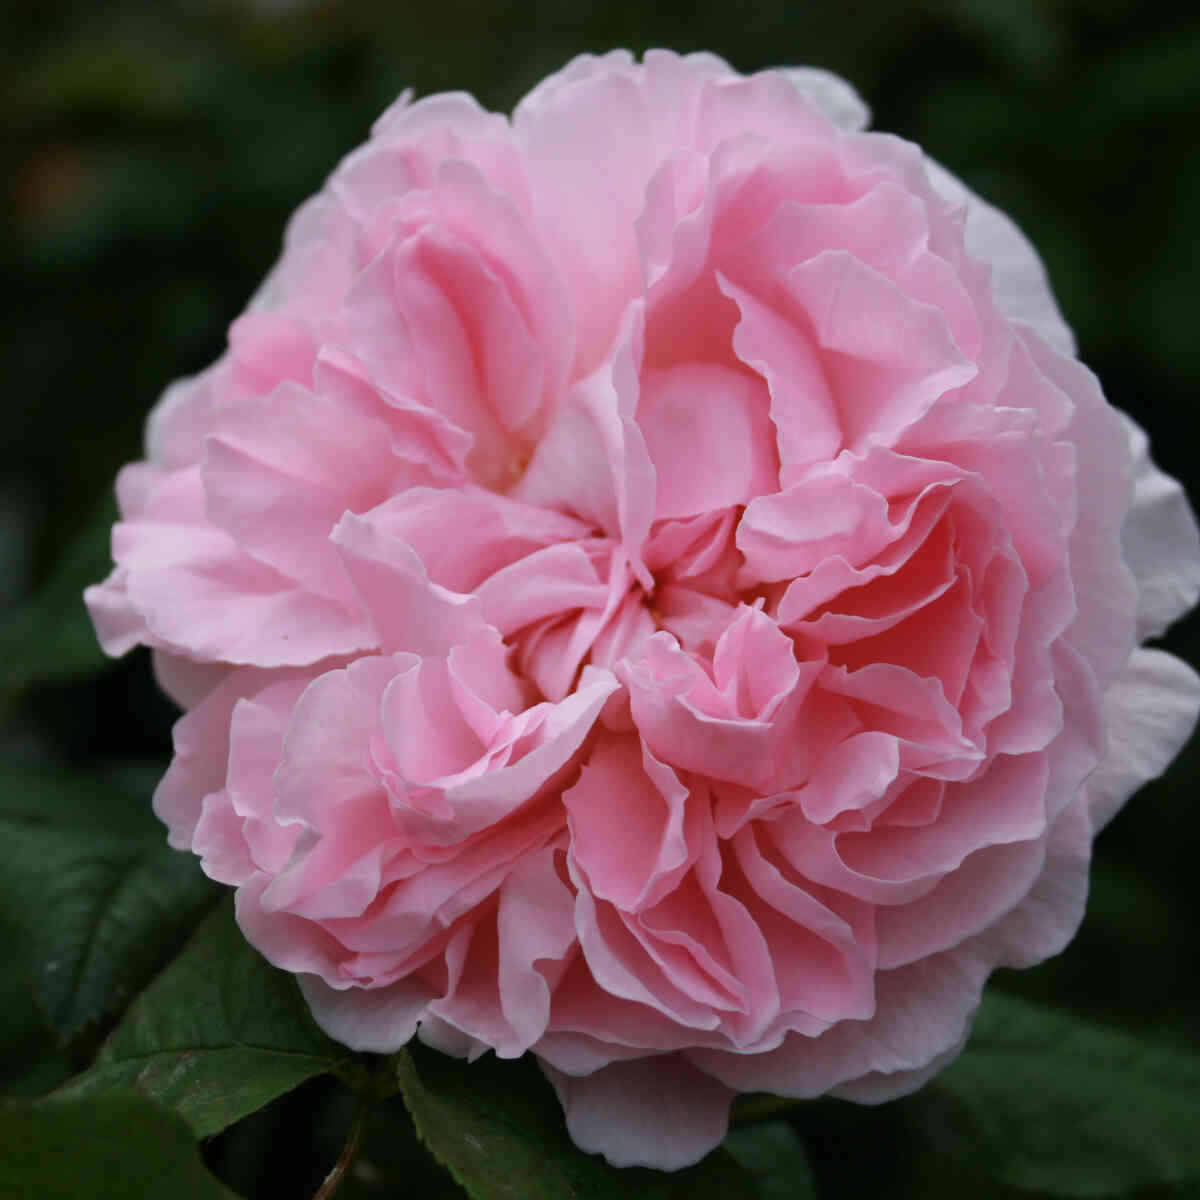 Rose 'Redoute'